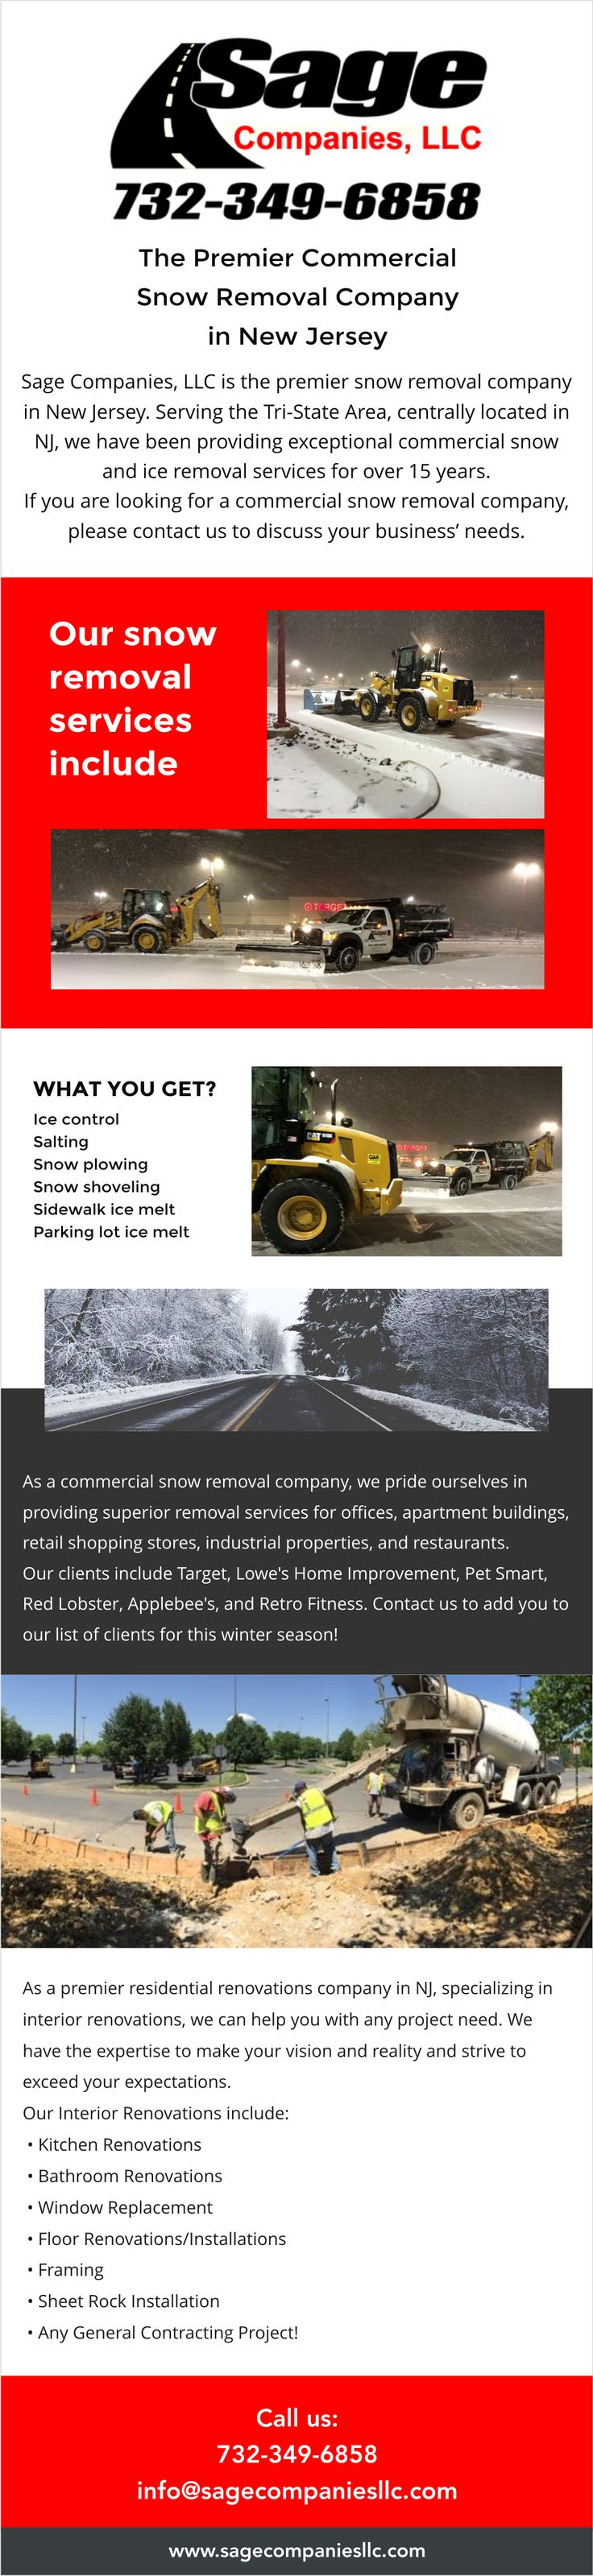 Sage Companies, LLC started out as the premier snow and ice removal company for the Tri-State, providing exceptional commercial snow removal services. Over the last 11 years our team of experienced professionals has grown to include experts in the fields of Paving, Concrete, Stone Work, Landscape Planting, Excavation, Demolition, Commercial Renovations and Residential Renovations. Sage Companies, LLC uses the most advanced tools, machinery and techniques to get